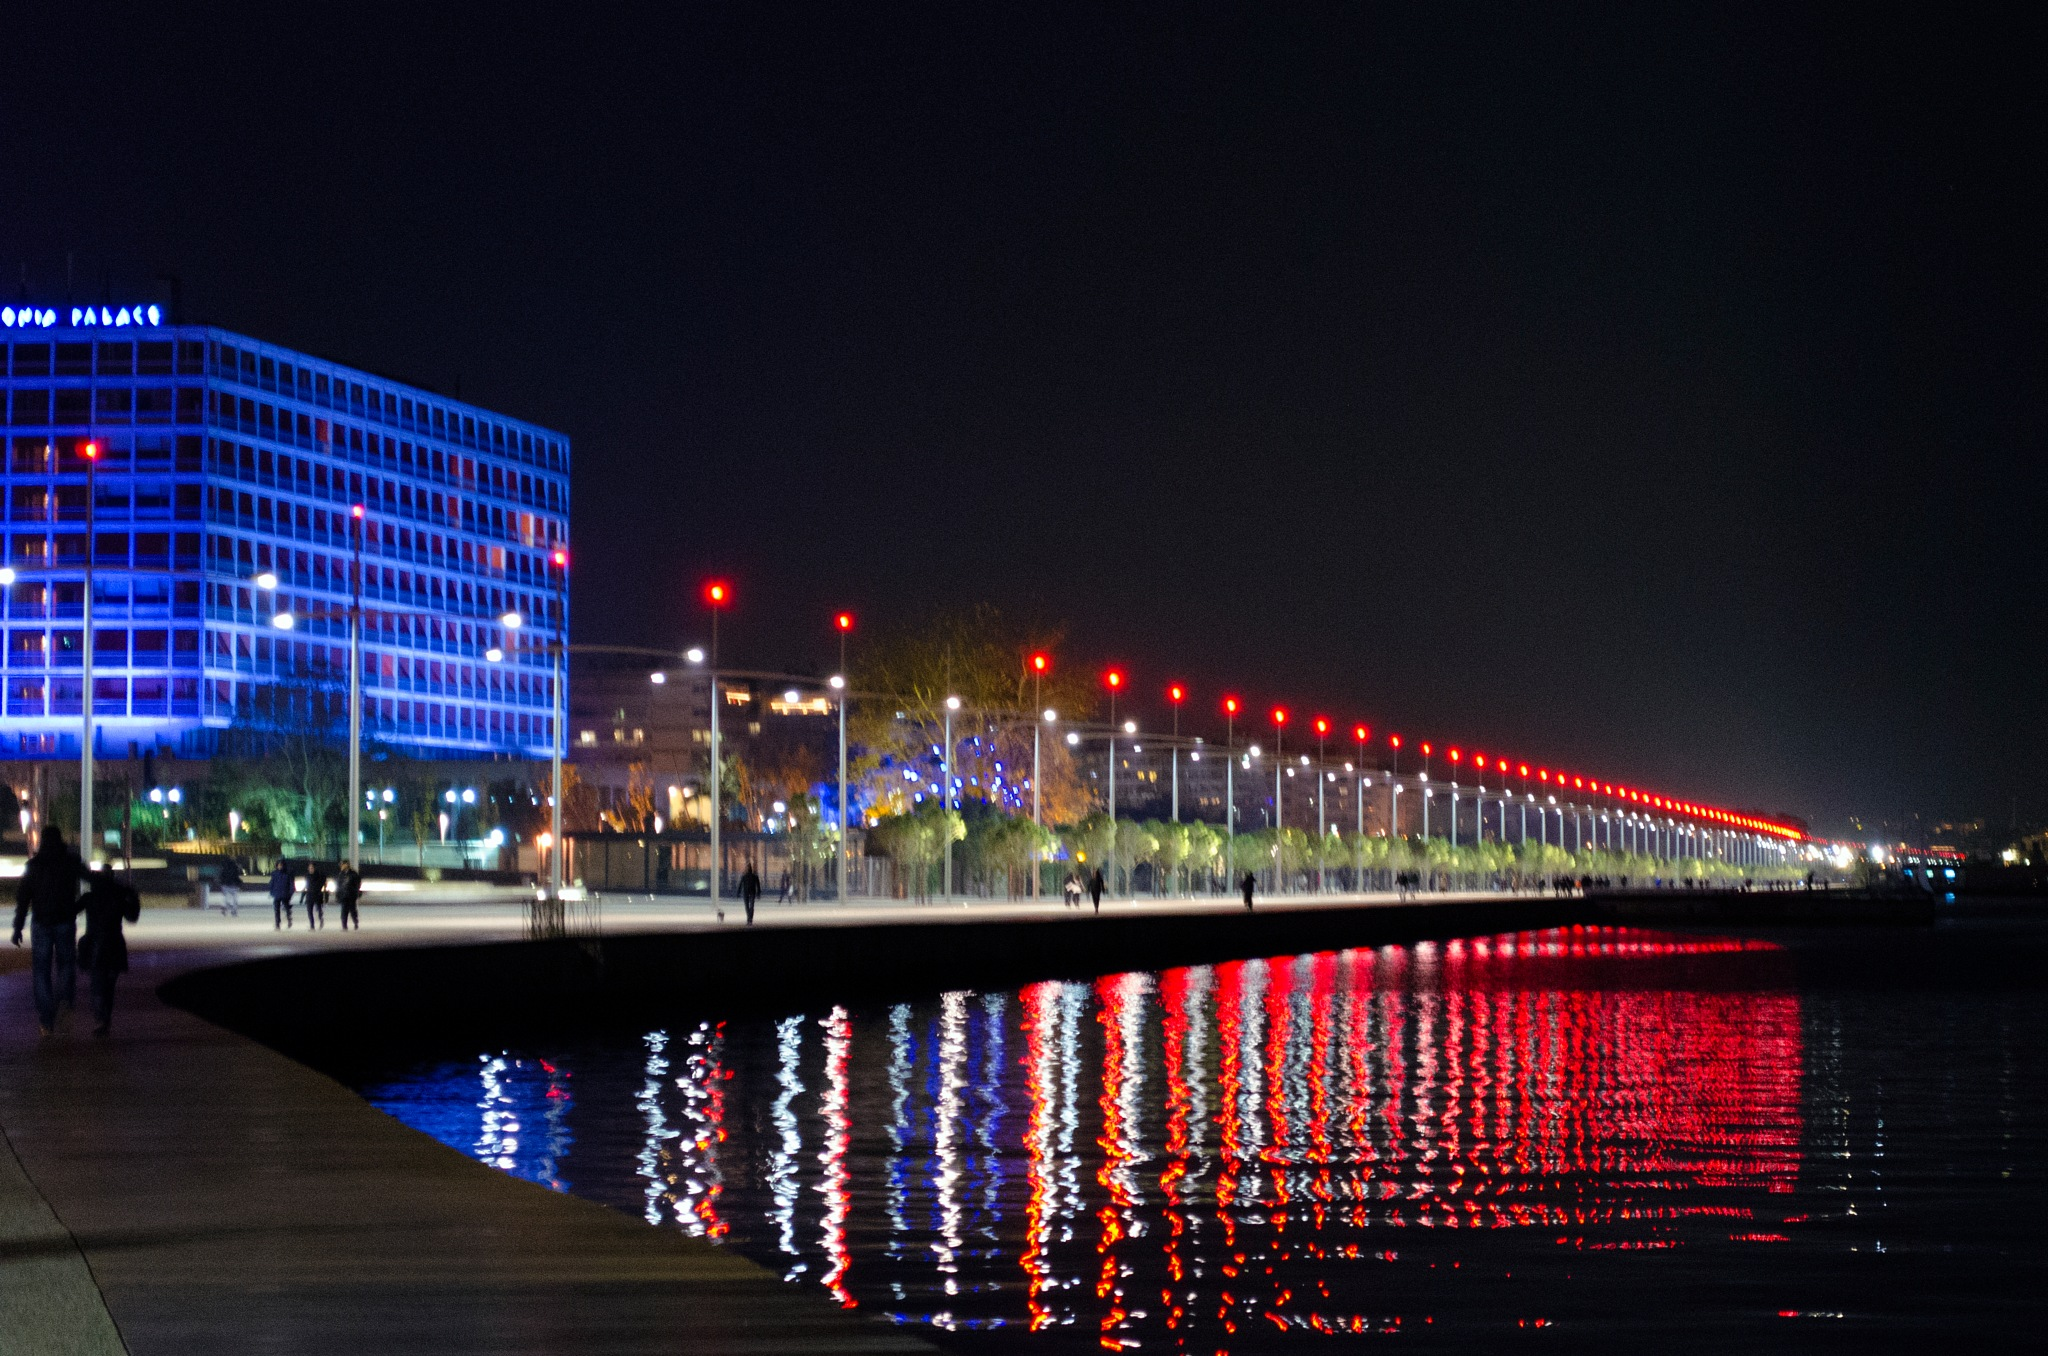 The waterfront at night by Stathis Karatzas